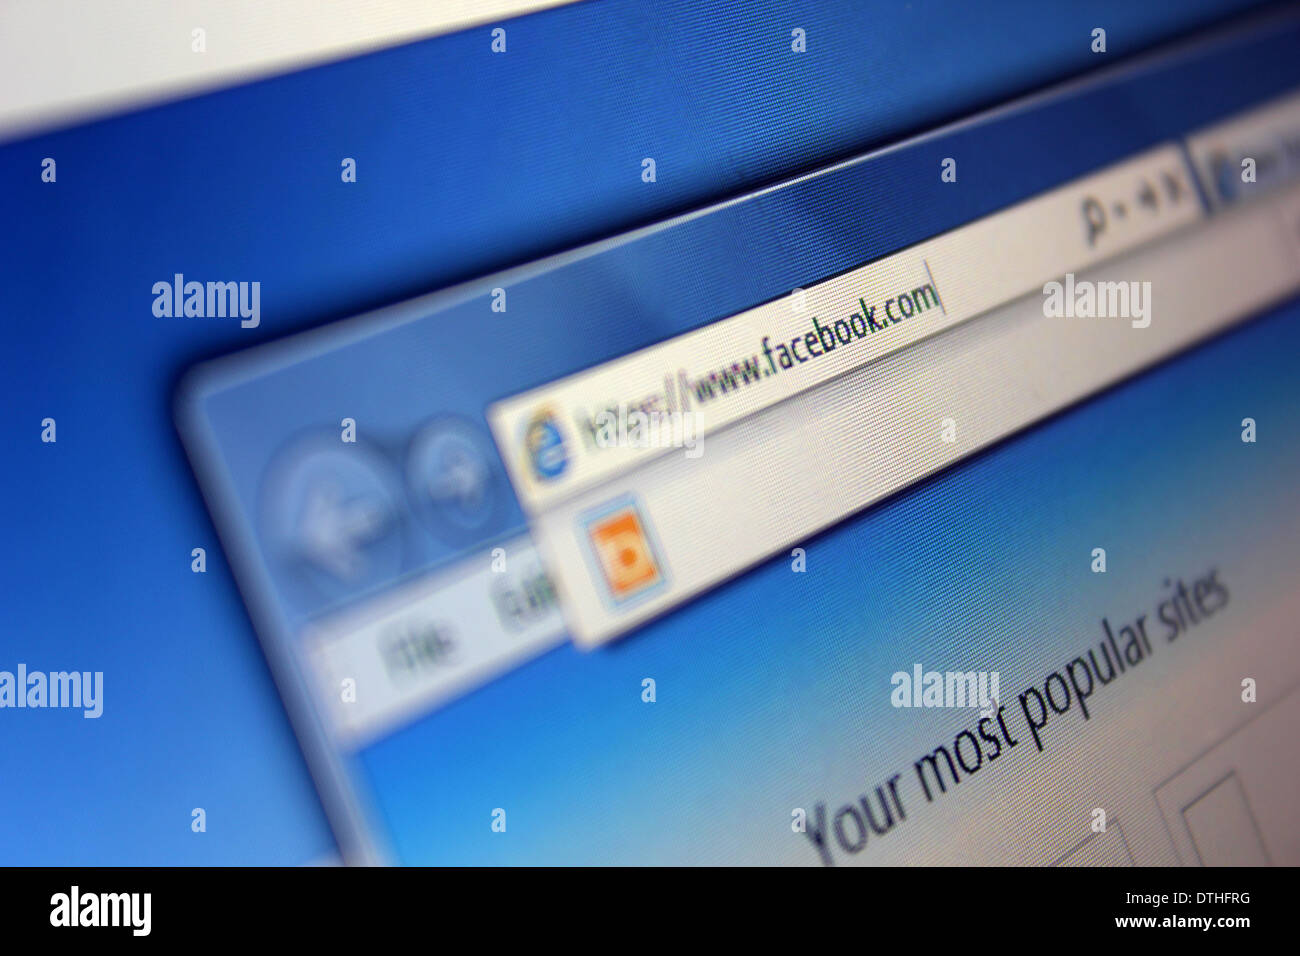 Facebook url - Stock Image